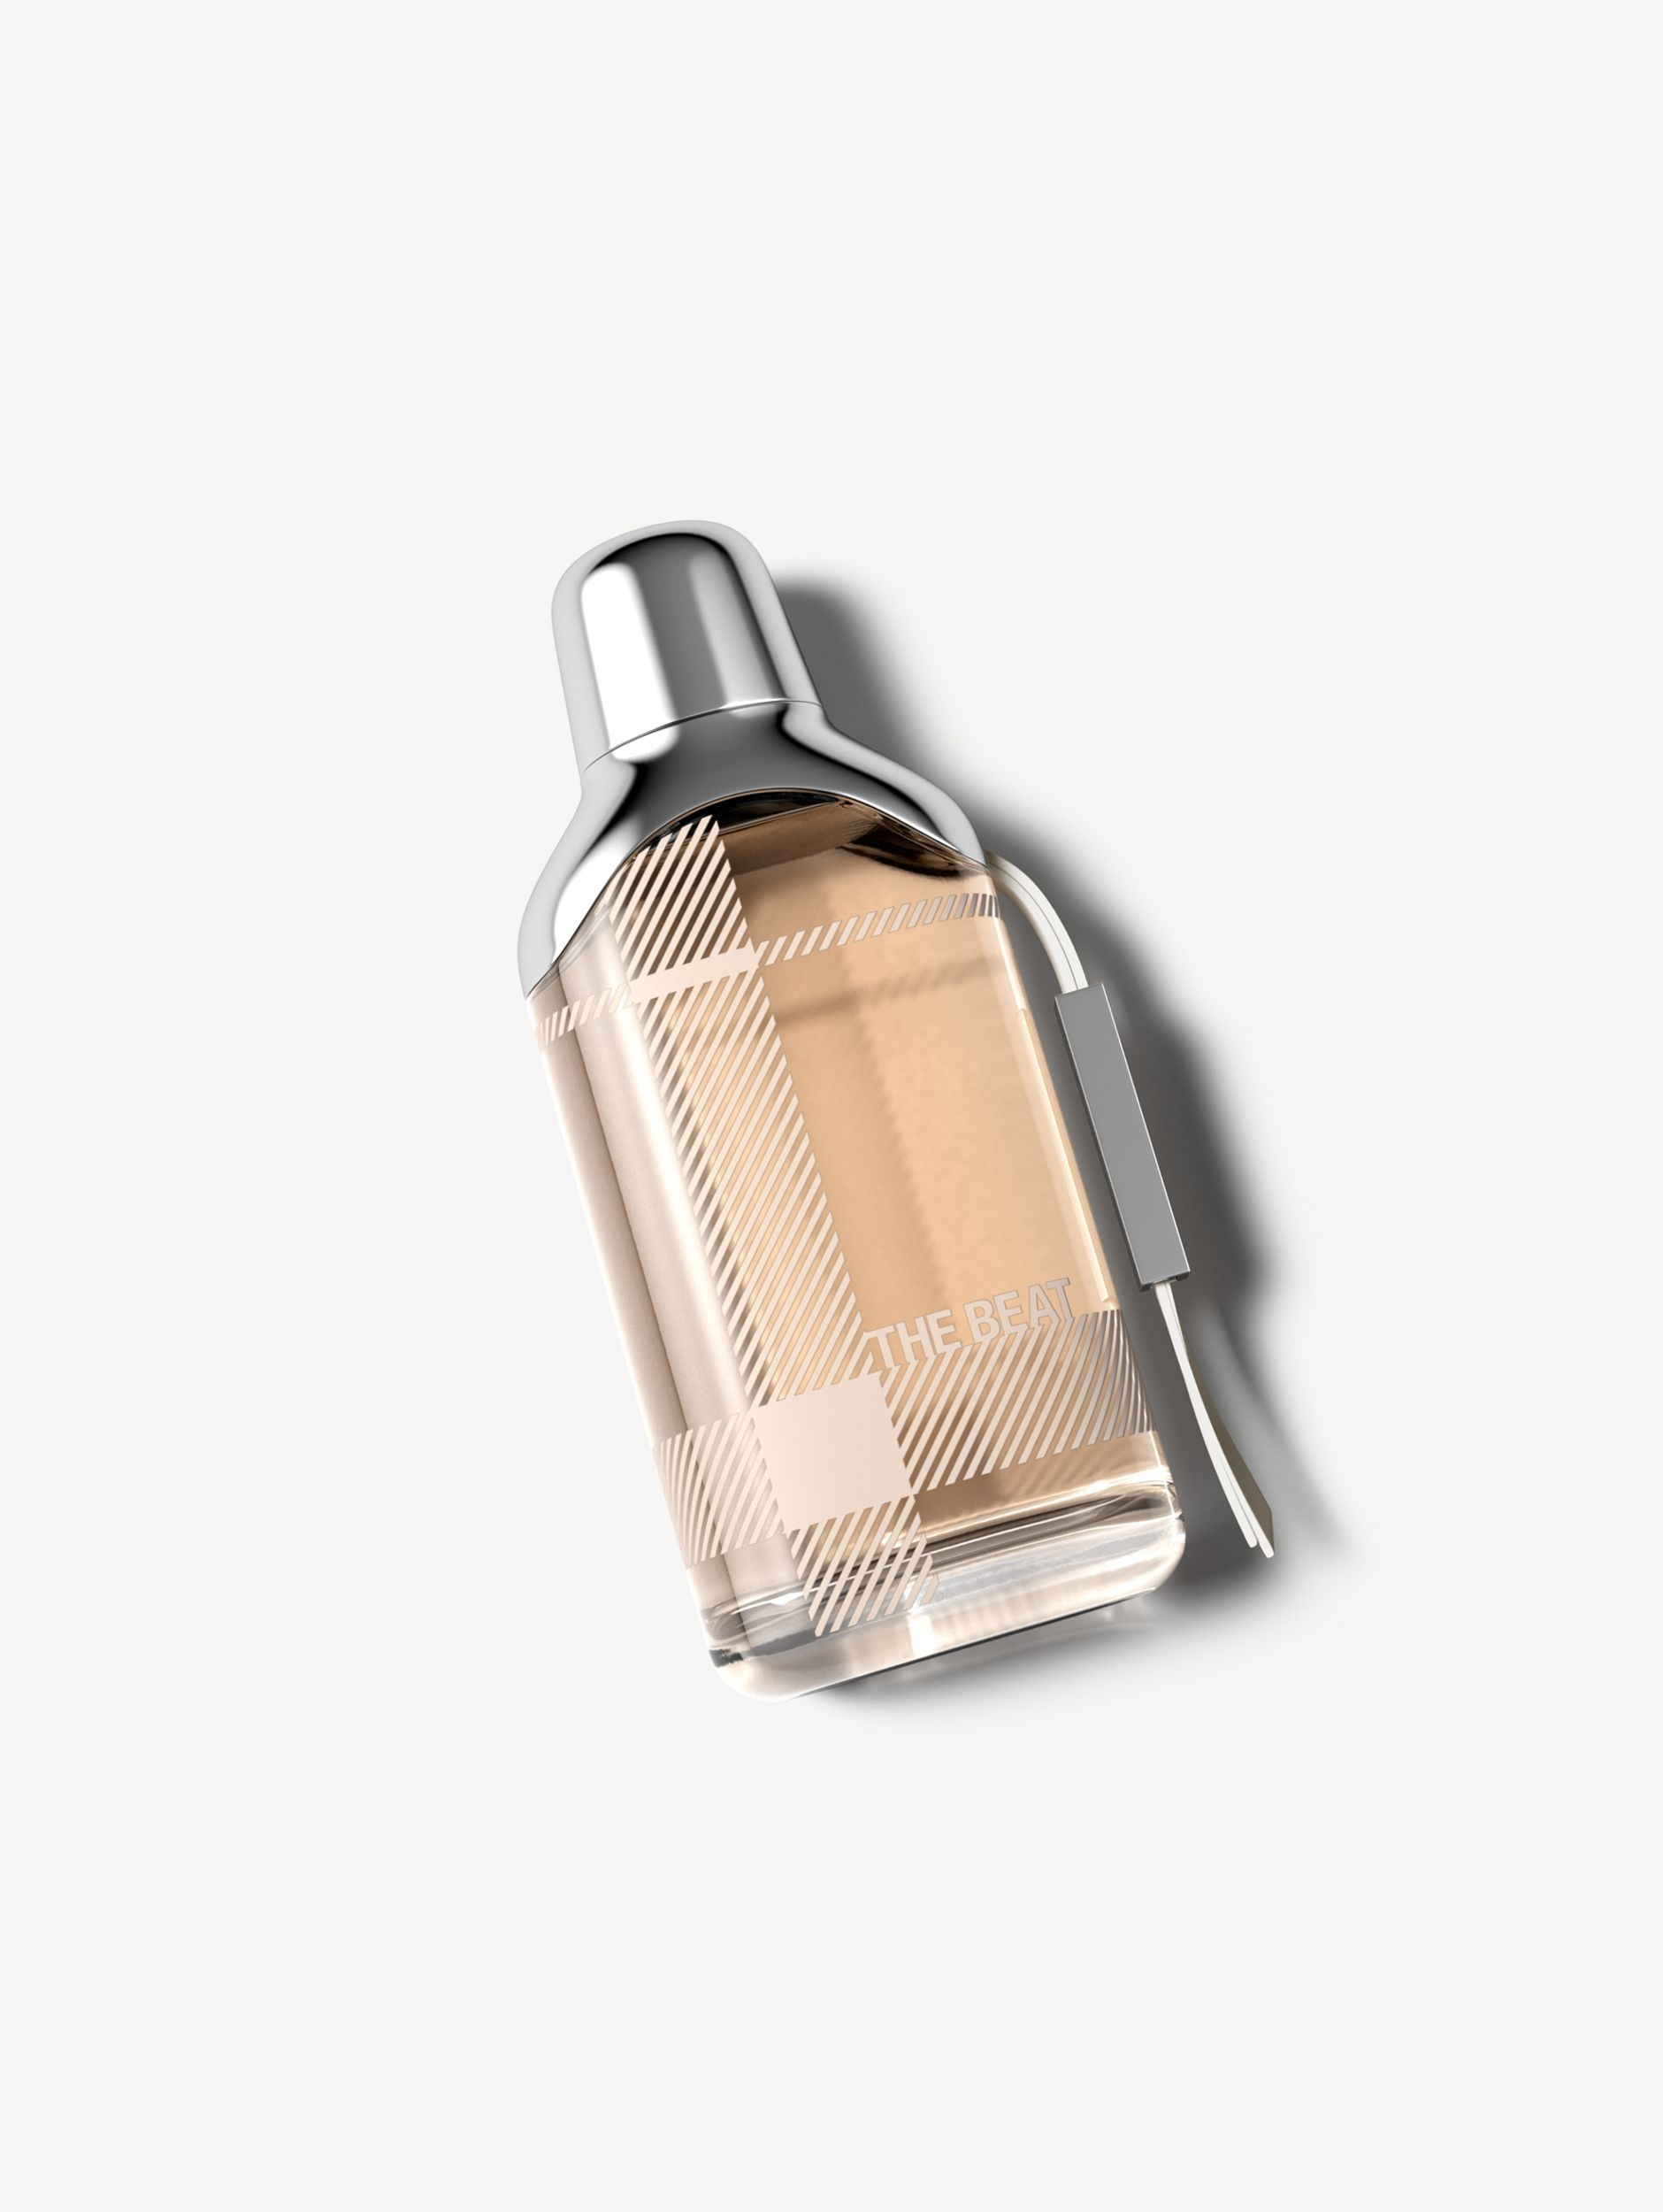 Burberry The Beat Eau de Parfum 50ml - Women | Burberry Singapore - 1